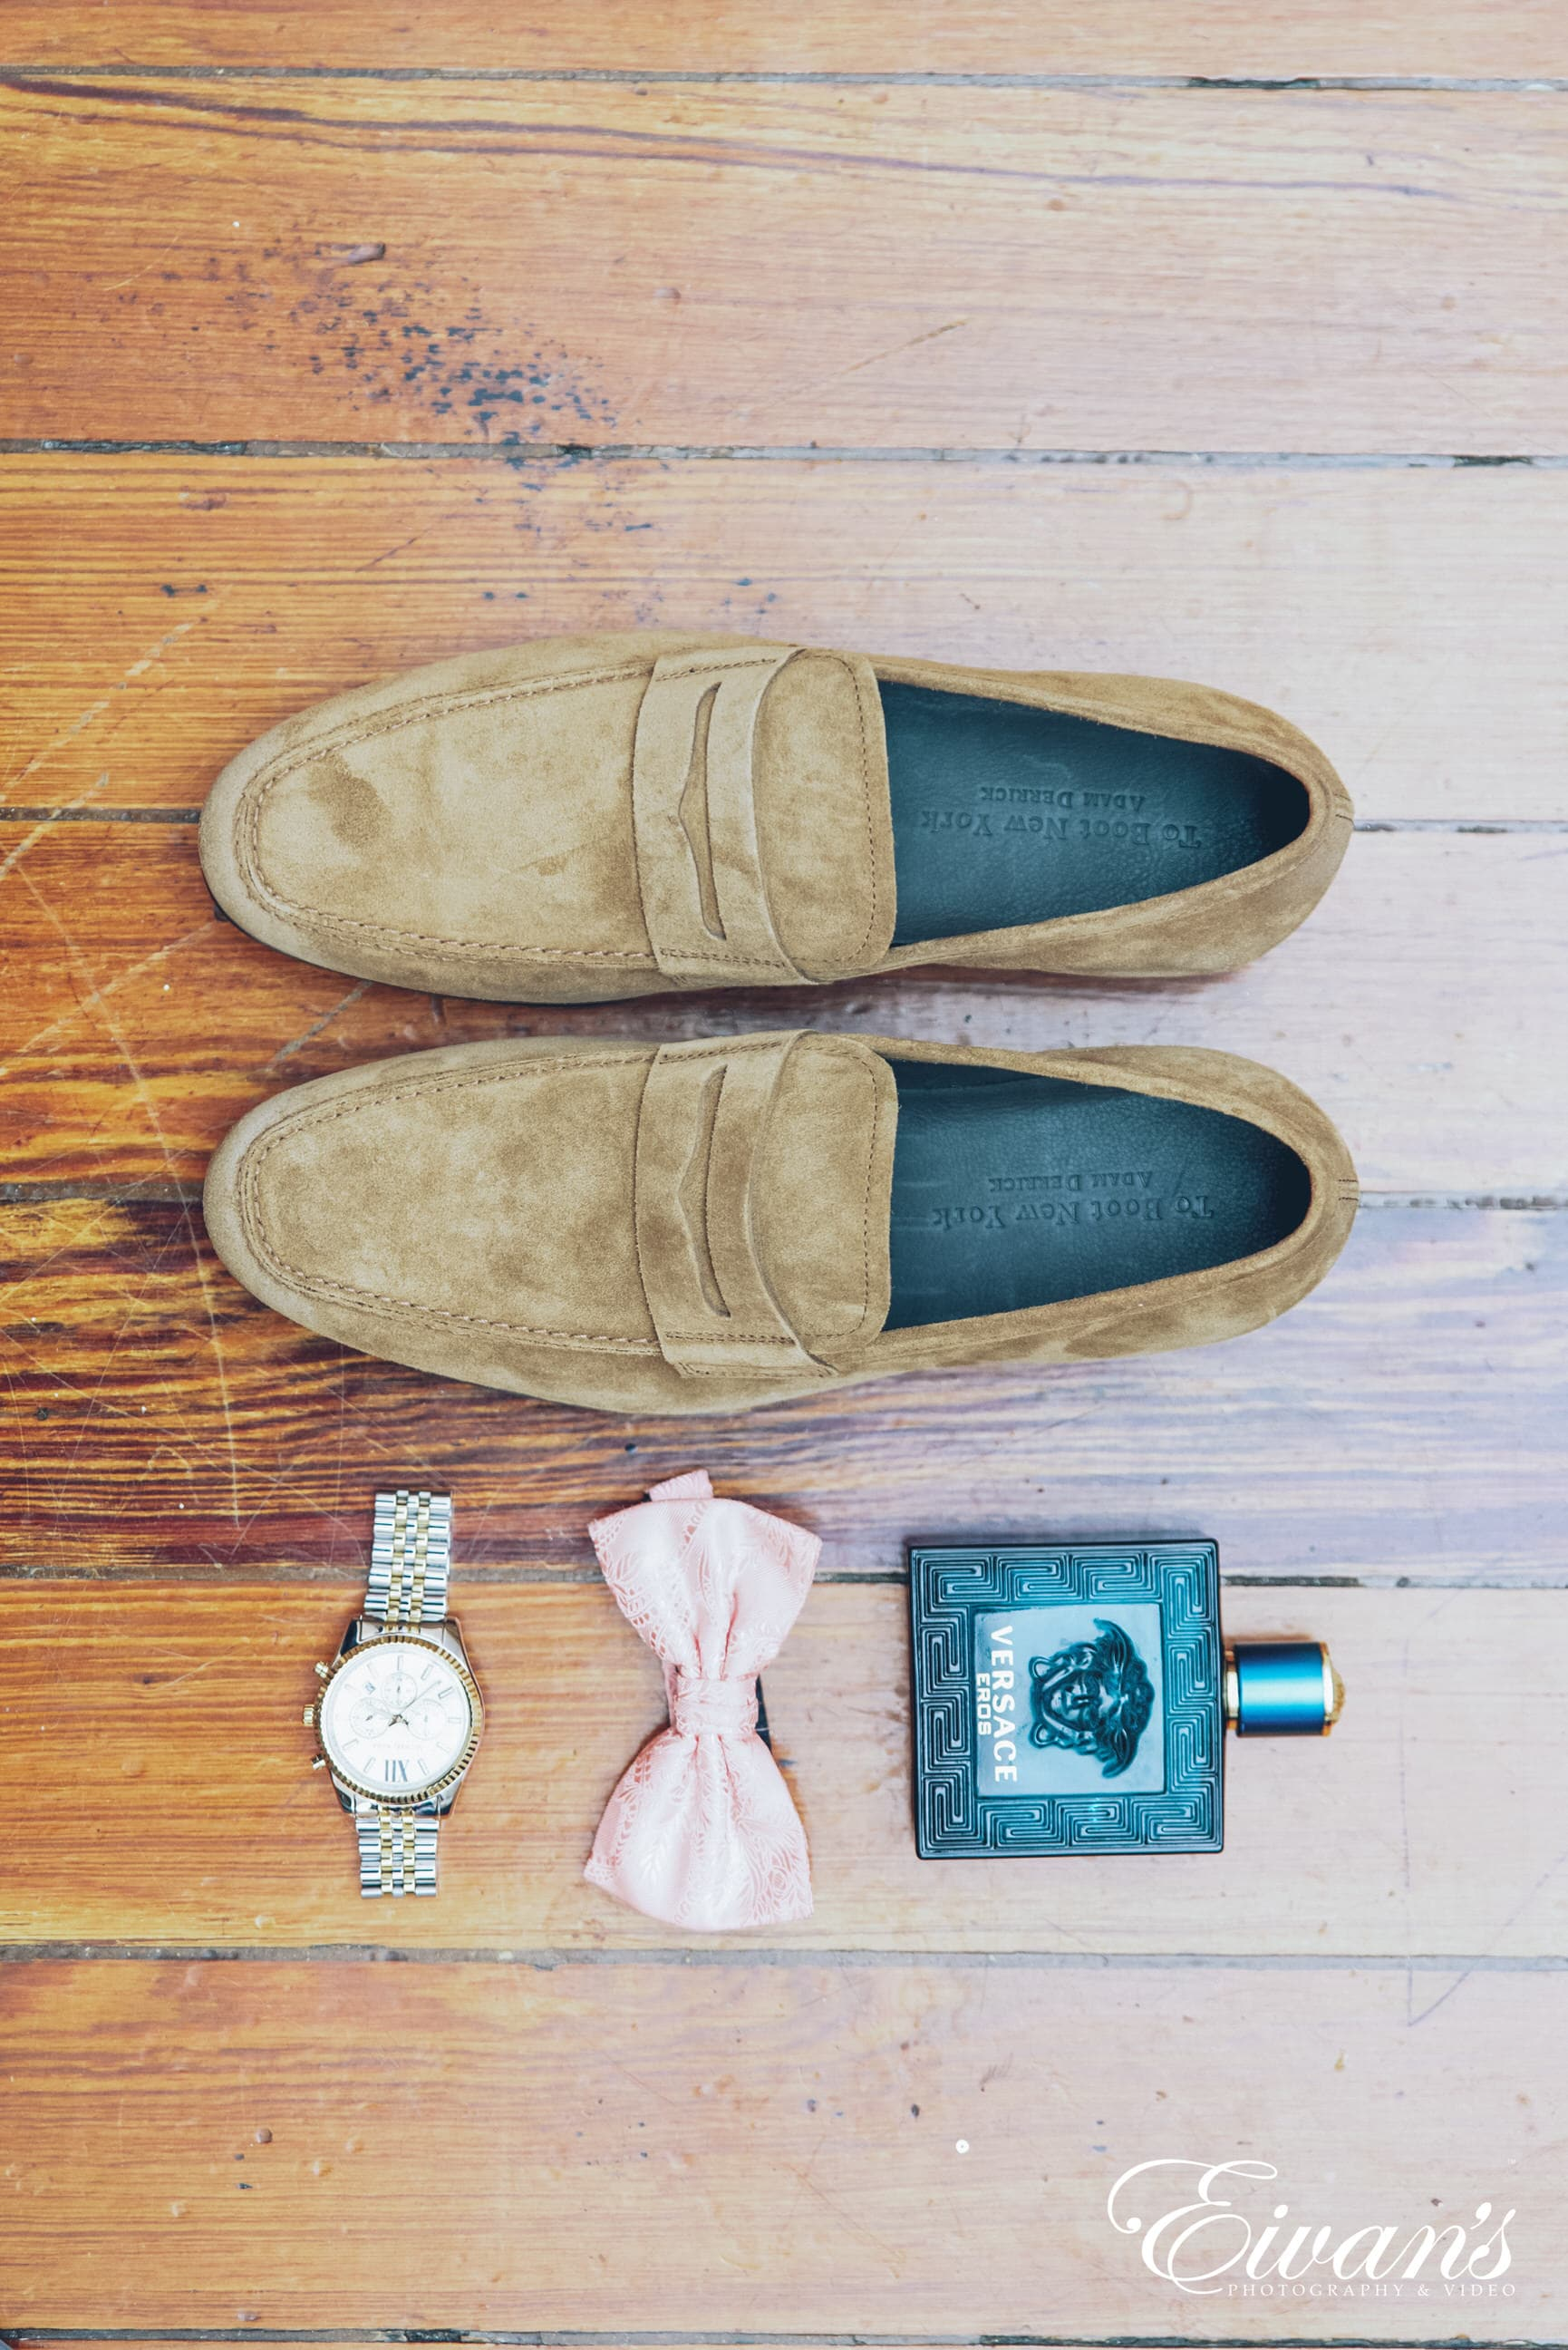 brown leather slip on shoes beside black and orange disposable lighter